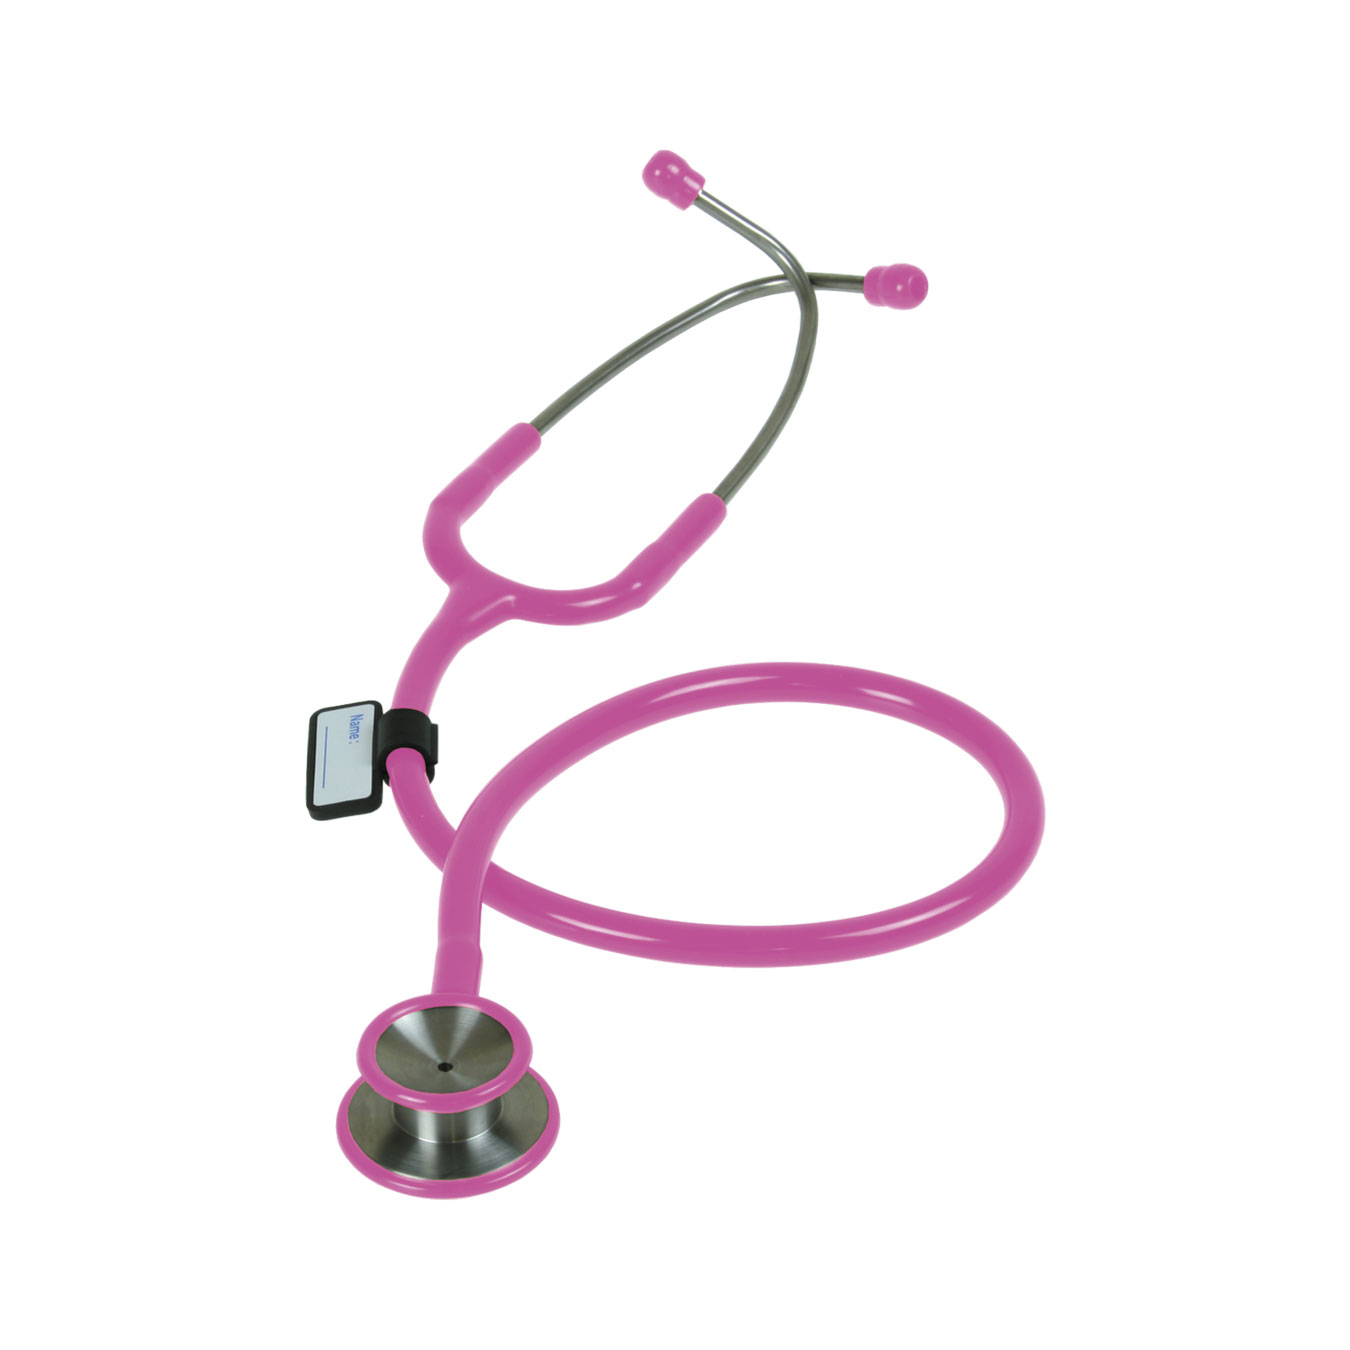 LSCLM_1_Liberty-Classic-Stethoscope-Magenta